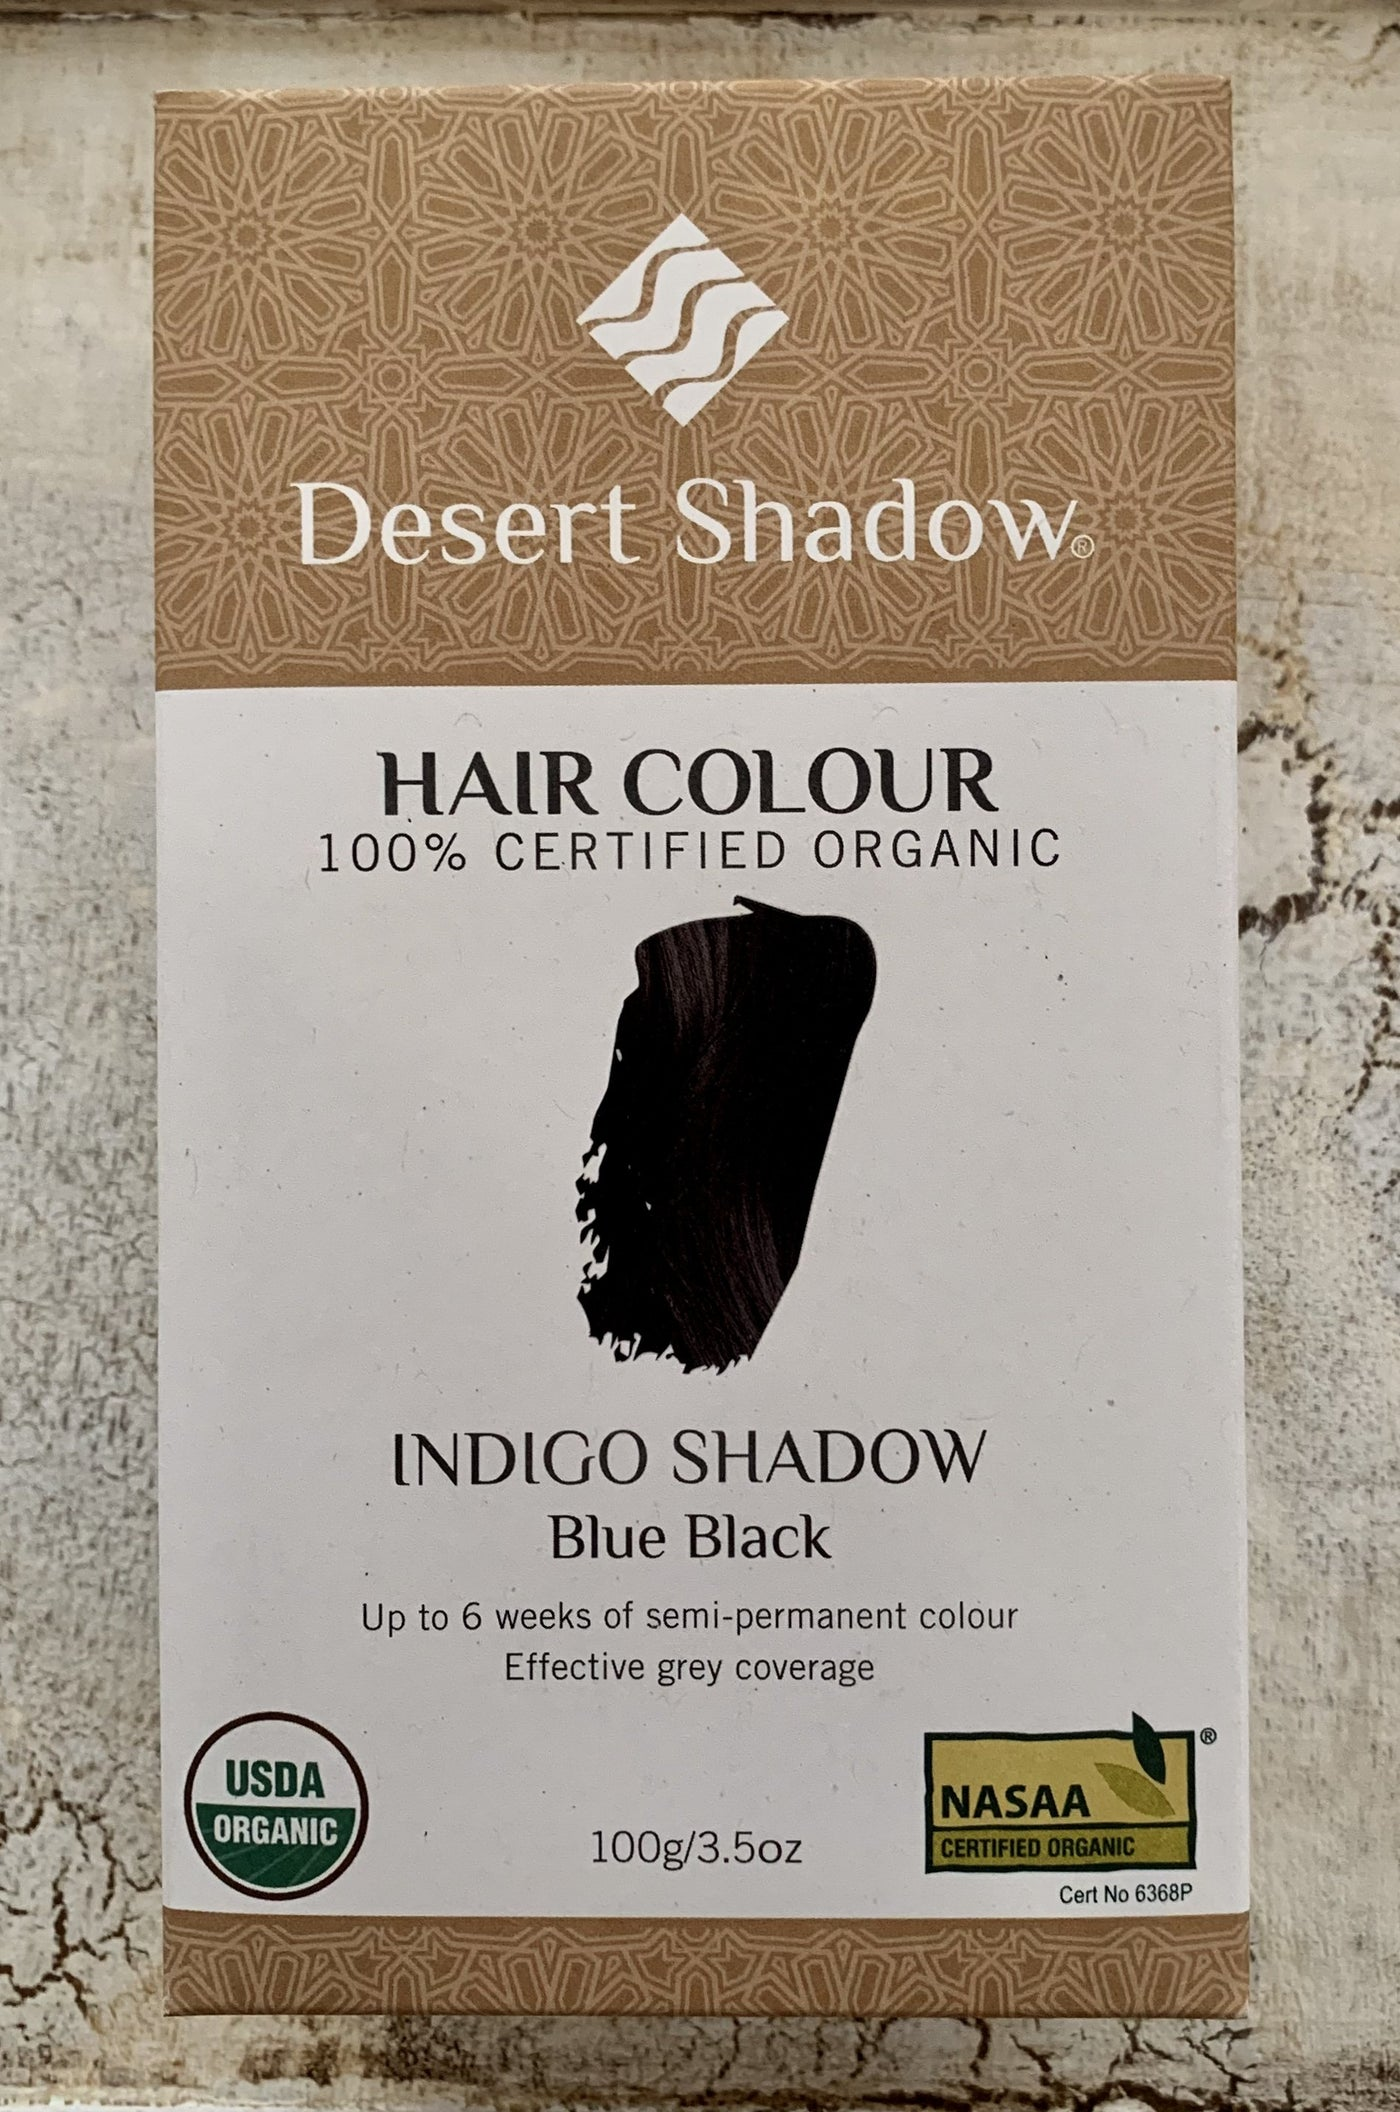 Desert Shadow 100% Certified Organic Hair Dye - Indigo Shadow 100g